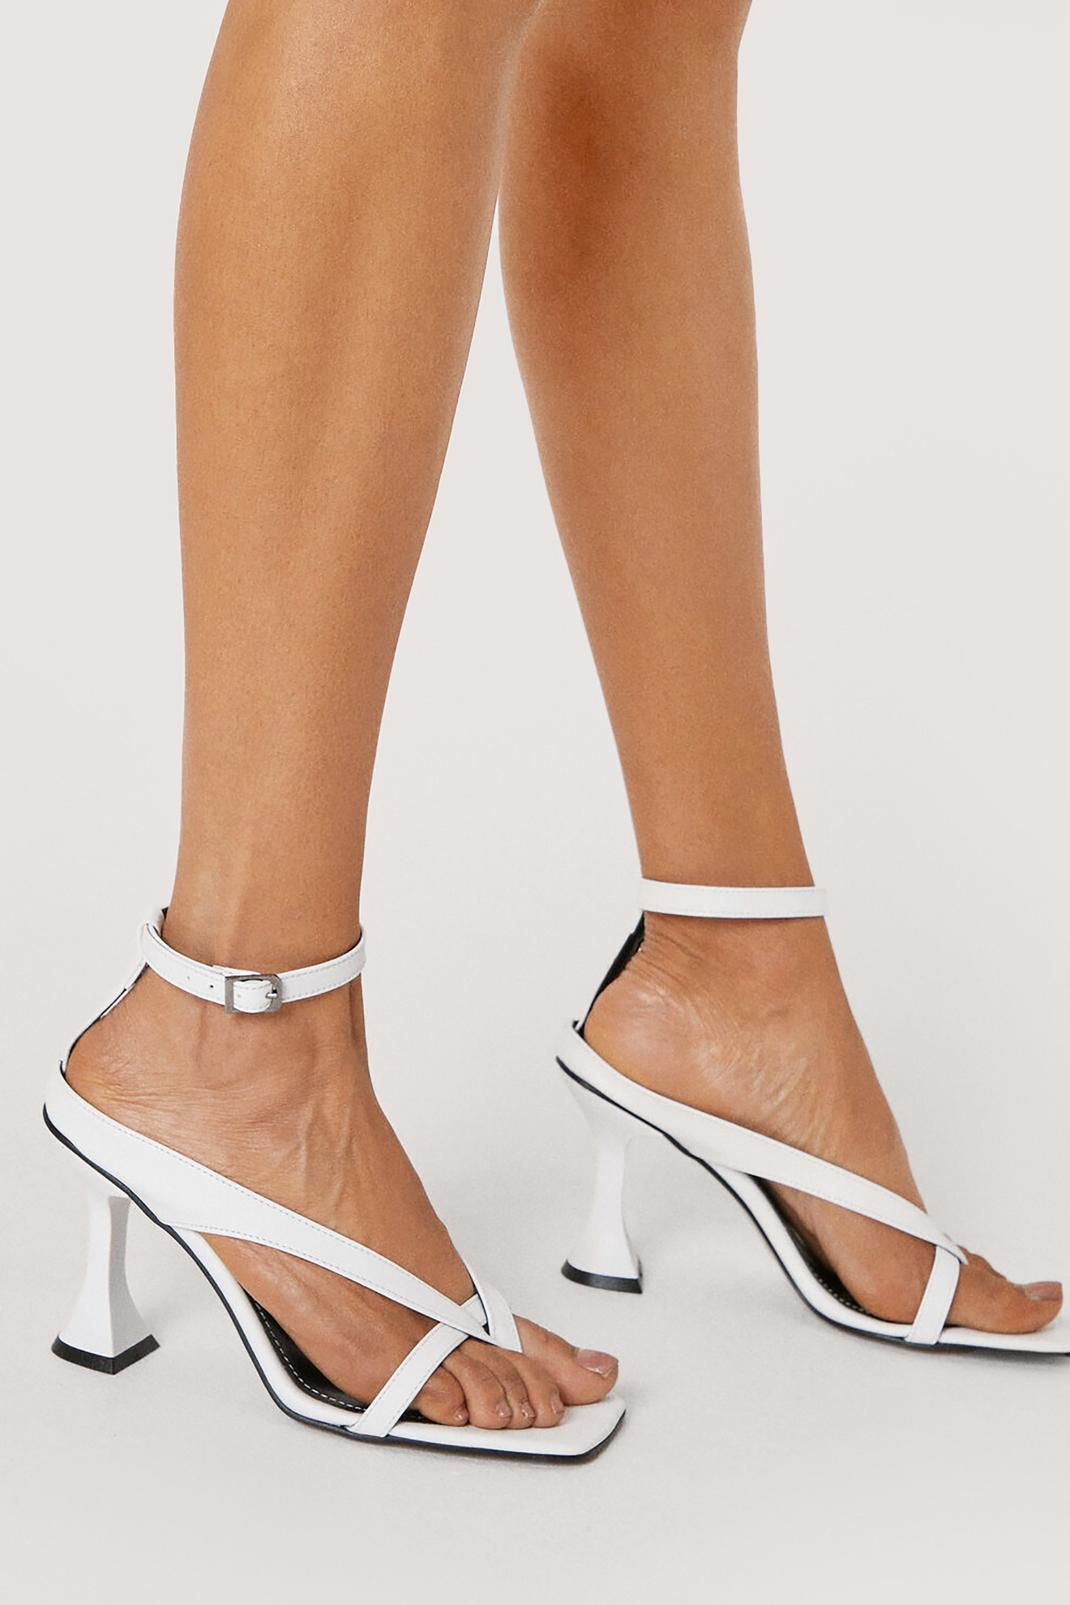 Faux Leather Toe Thong Flare Stiletto Heels | Nasty Gal